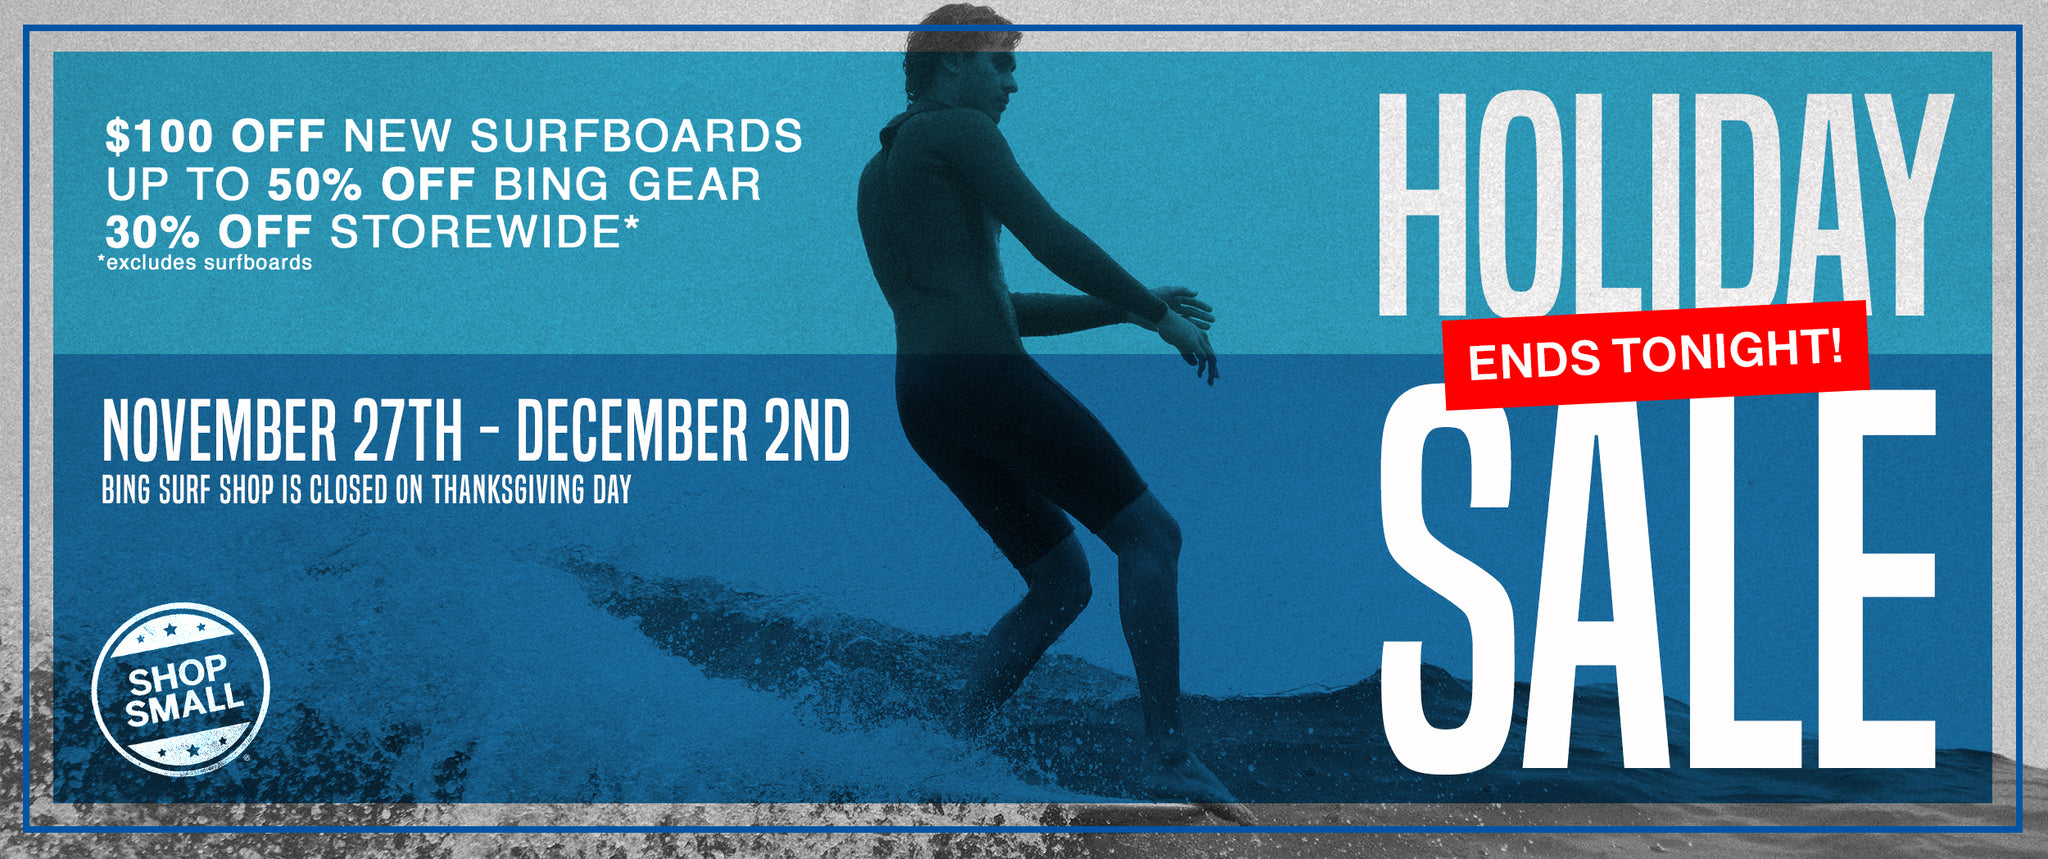 Bing Surfboards Holiday Sale Ends Today